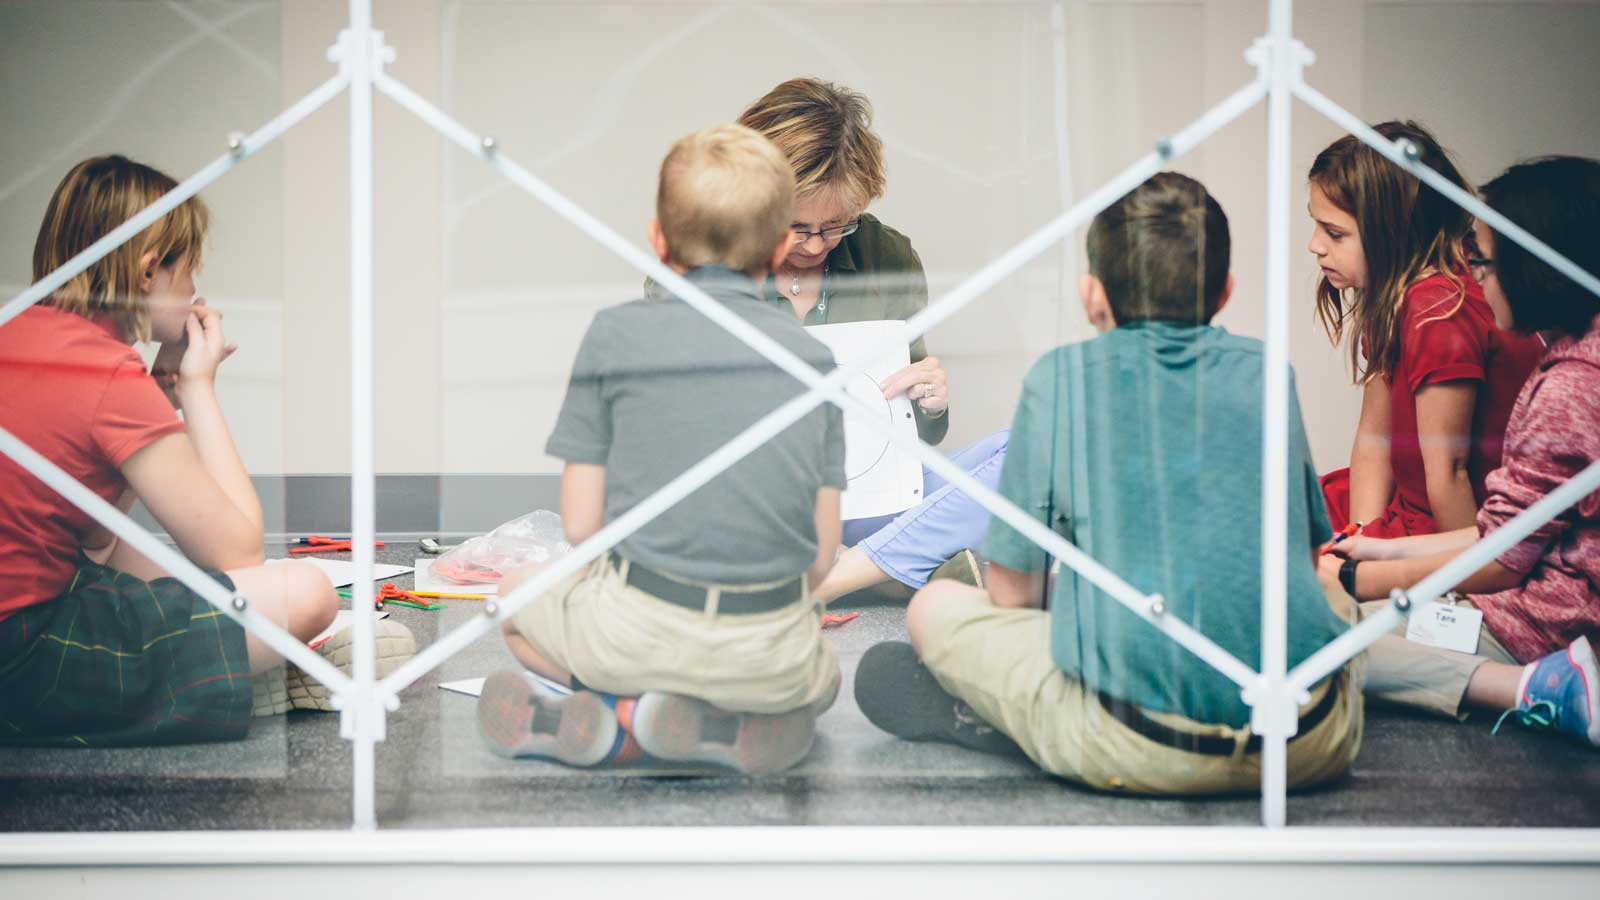 Students sitting with a teacher near a metal railing